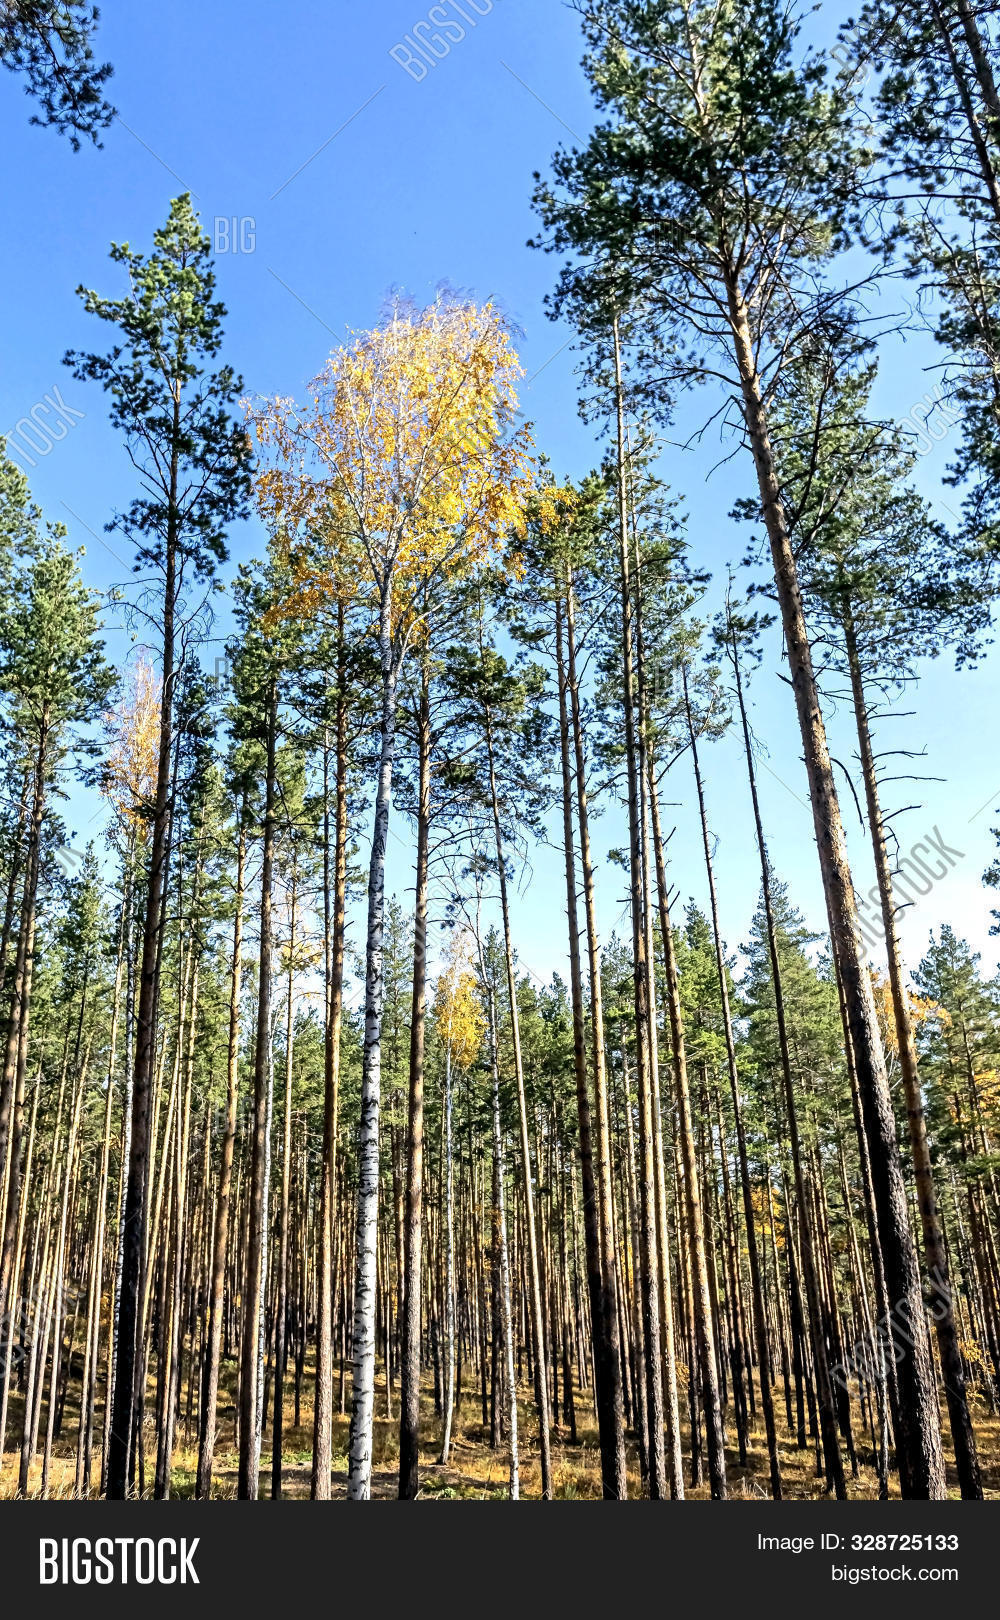 among,autumn,birch,blue,bright,circle,colorful,environment,fall,foliage,forest,green,high,hike,leaves,long,moss,mountains,natural,nature,october,orange,outdoors,pine,ridge,rock,russia,season,sky,slender,stone,sunny,taiga,tree,woods,yellow